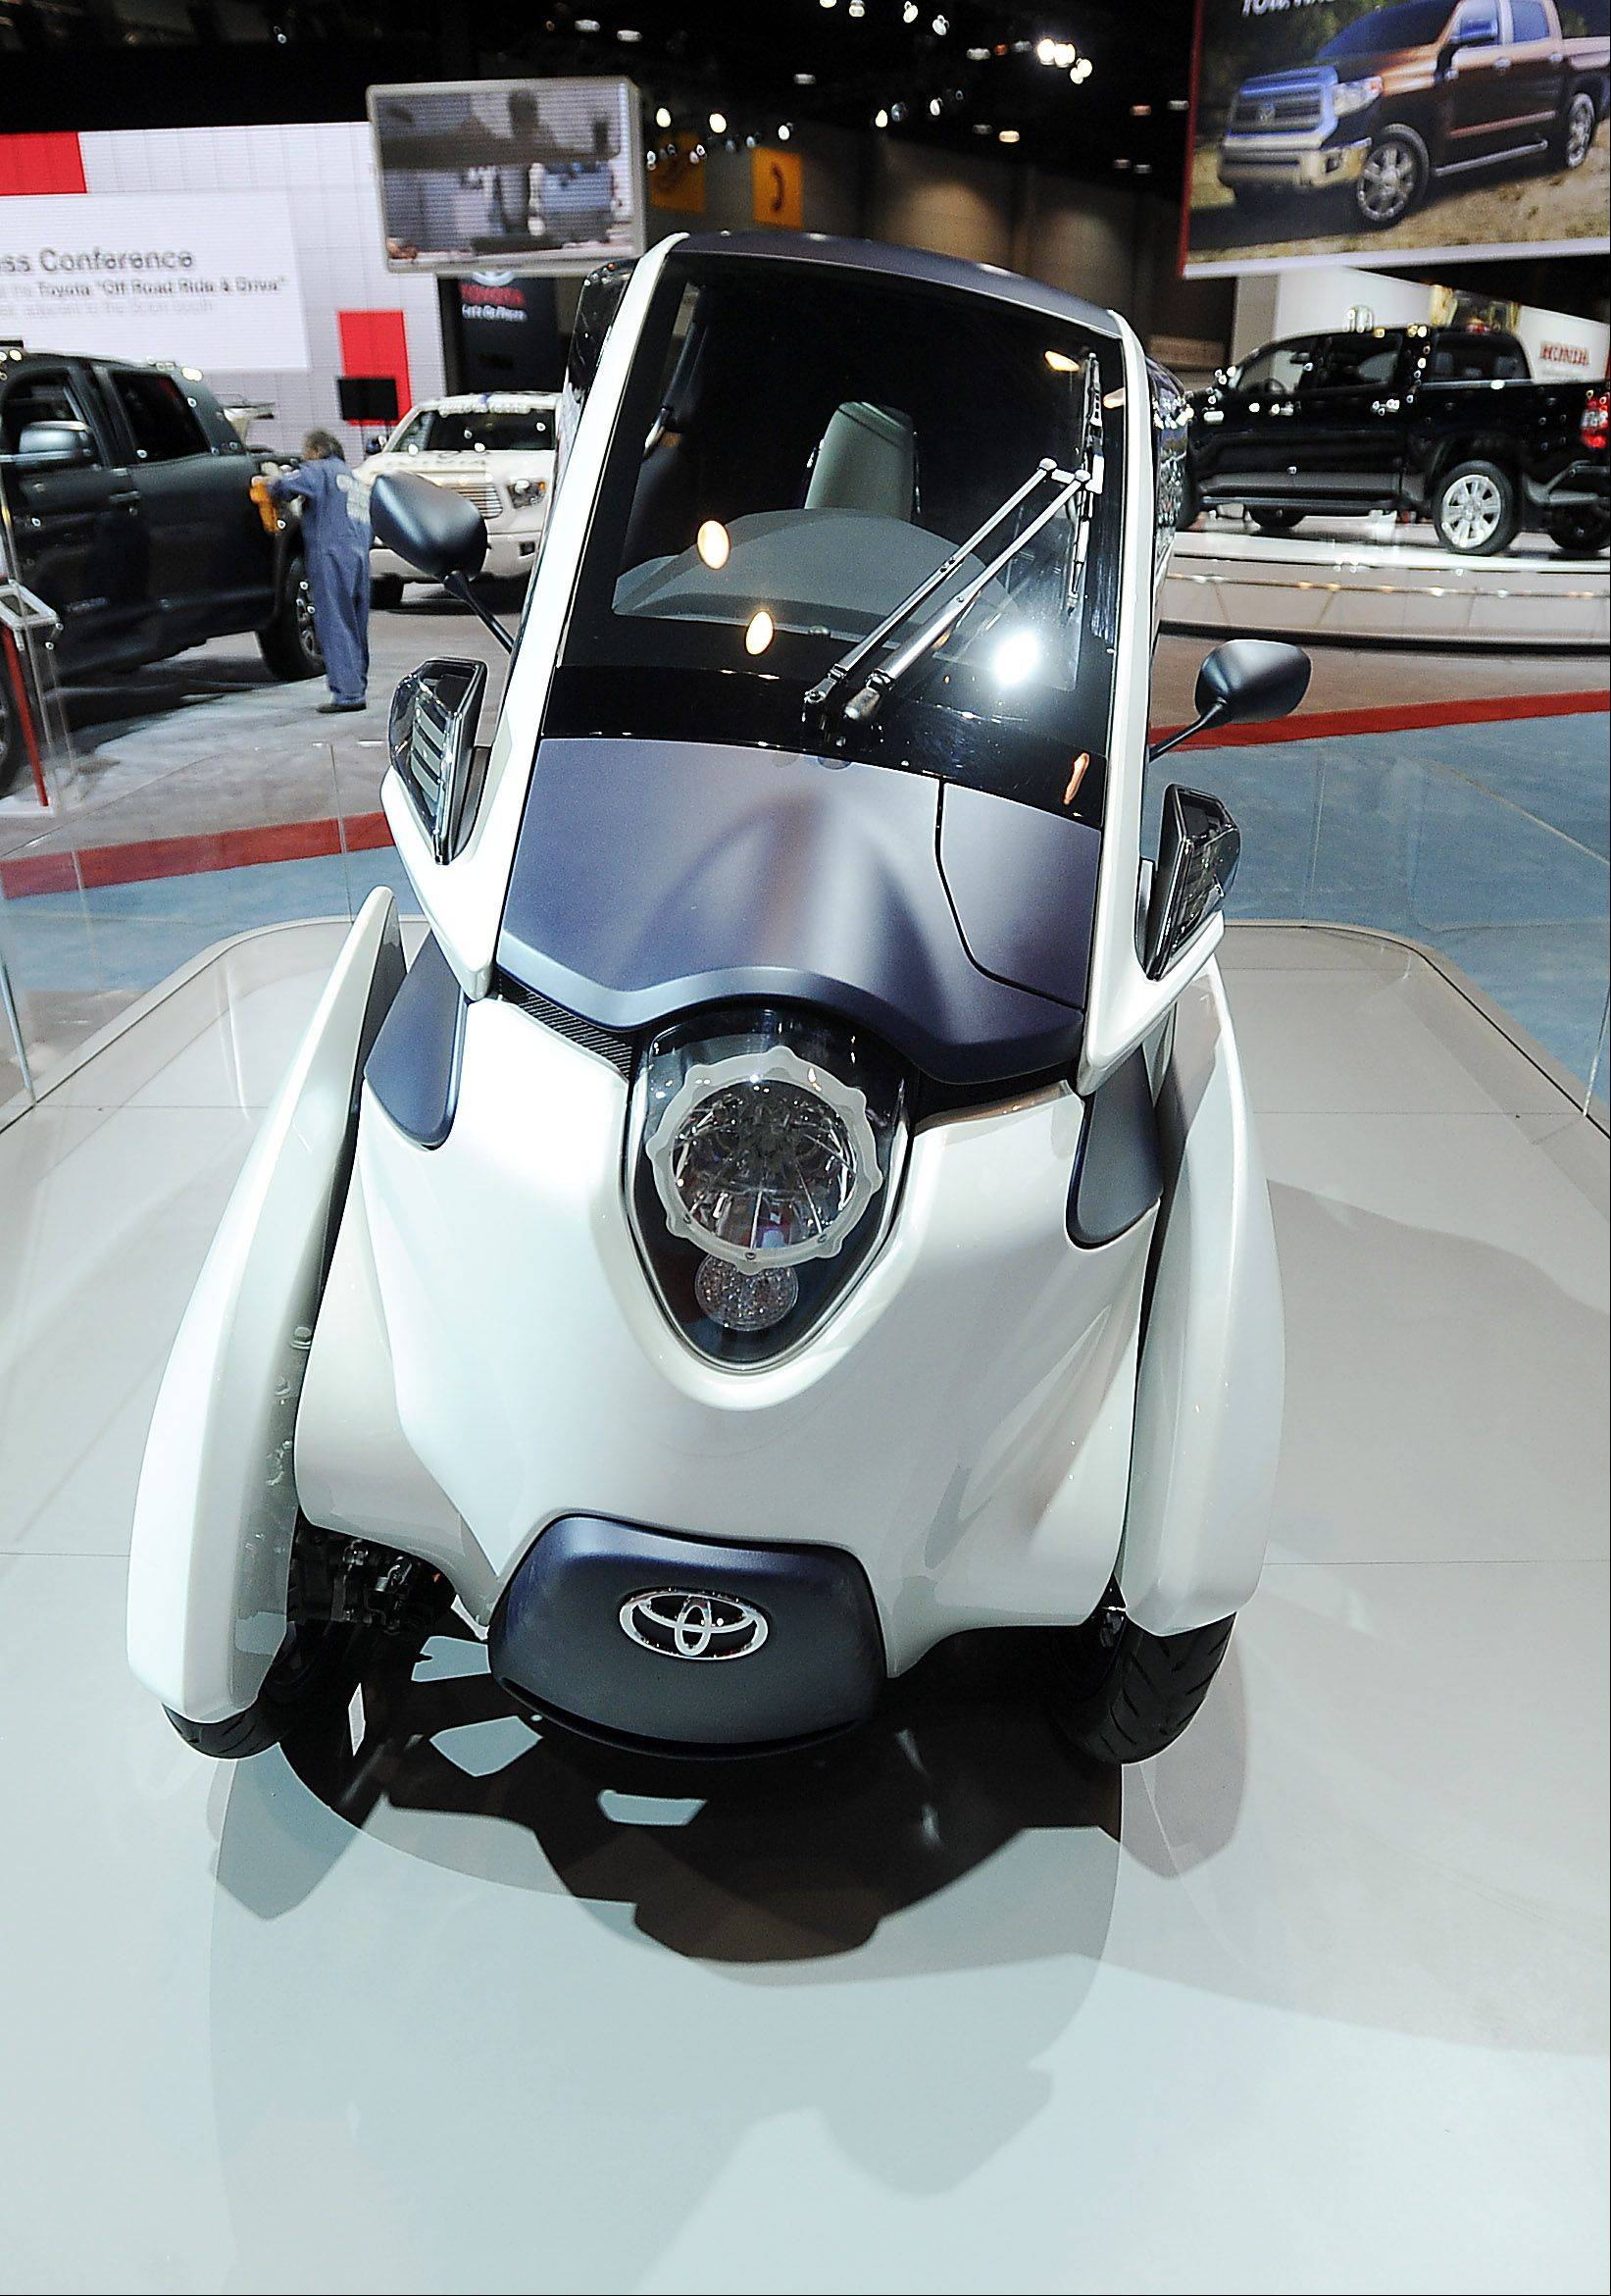 The Toyota Concept car I Road.